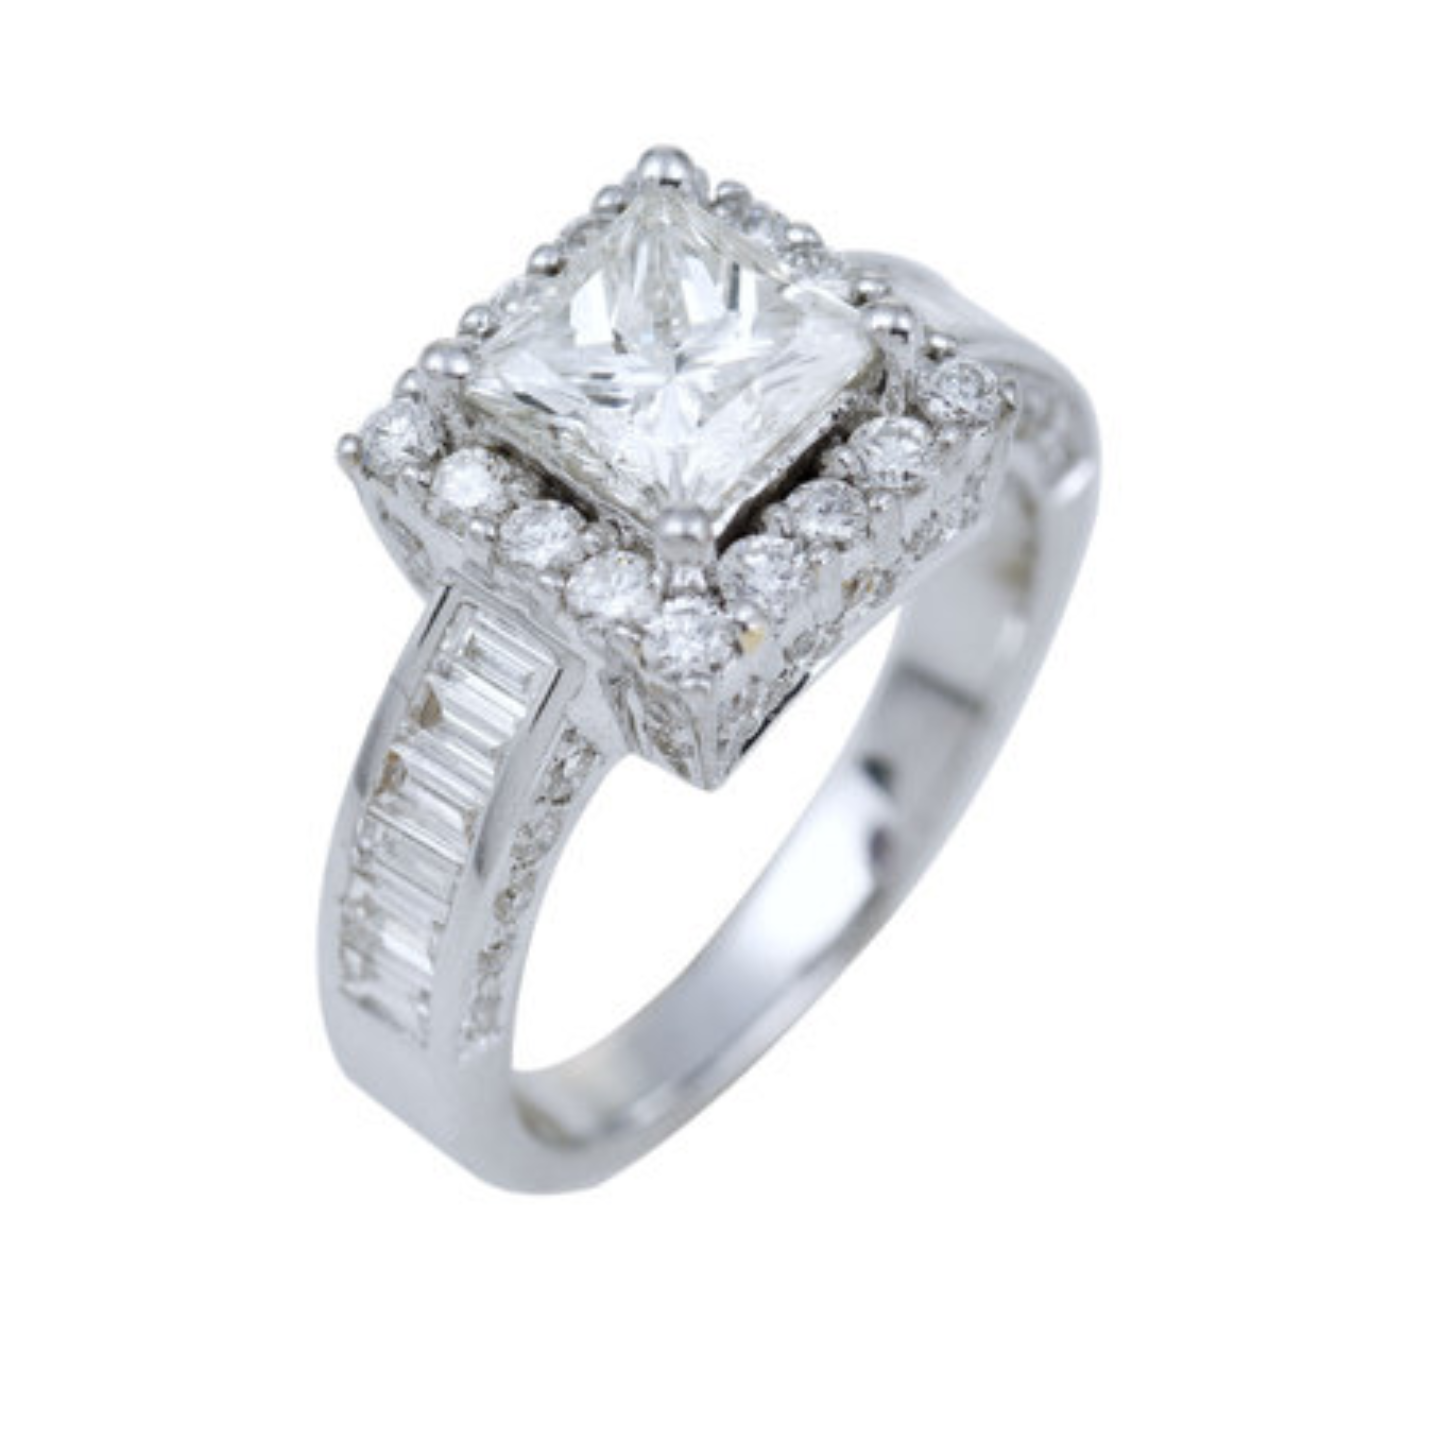 Diamond solitaire Engagement or wedding   rings-Cluster Ring,Linear ring, stackable ring